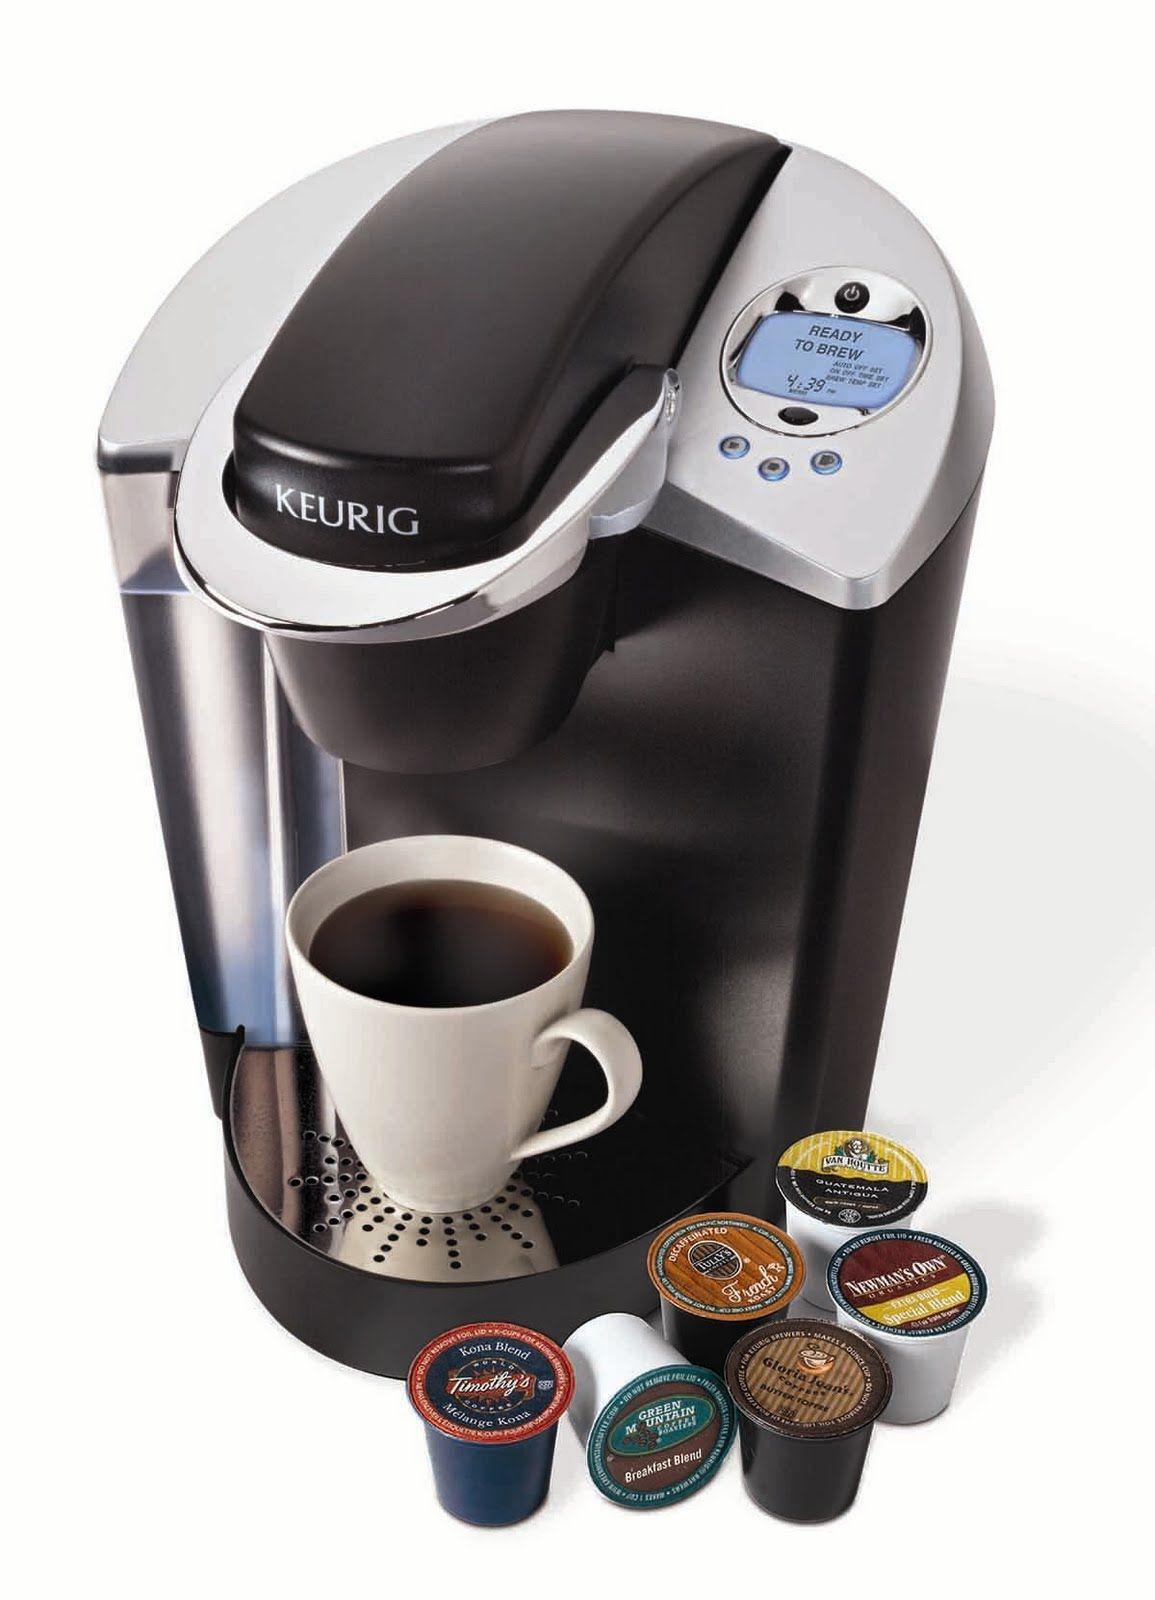 Keurig Coffee Maker Review Which Keurig Coffee Maker is